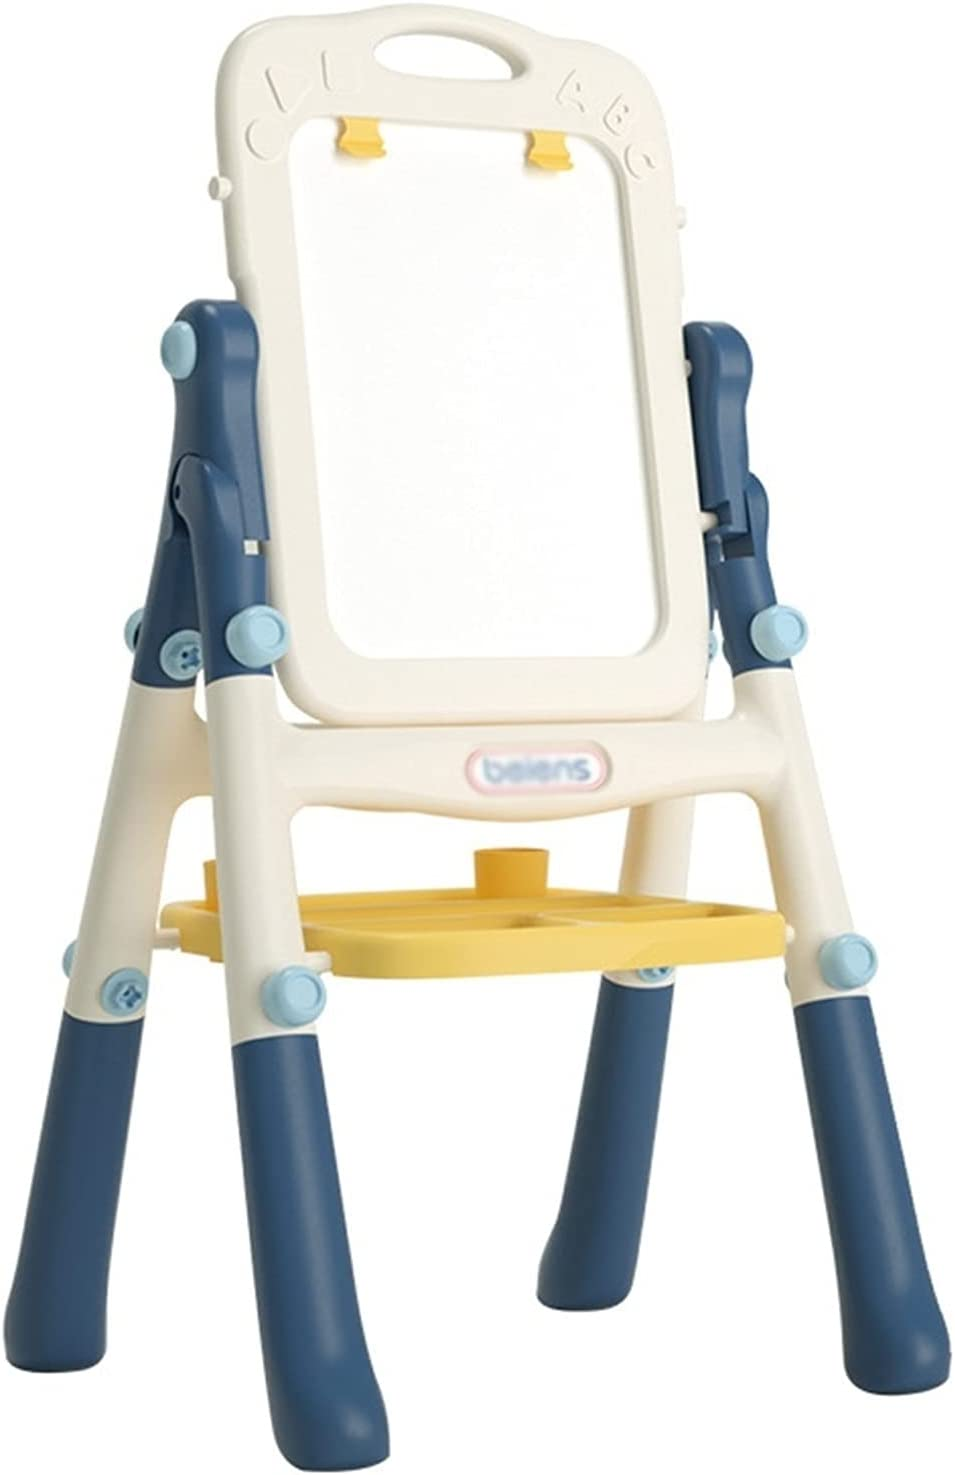 Latest item LICHUAN Super beauty product restock quality top! 360° Rotating Kids Easel Art for Toddlers with